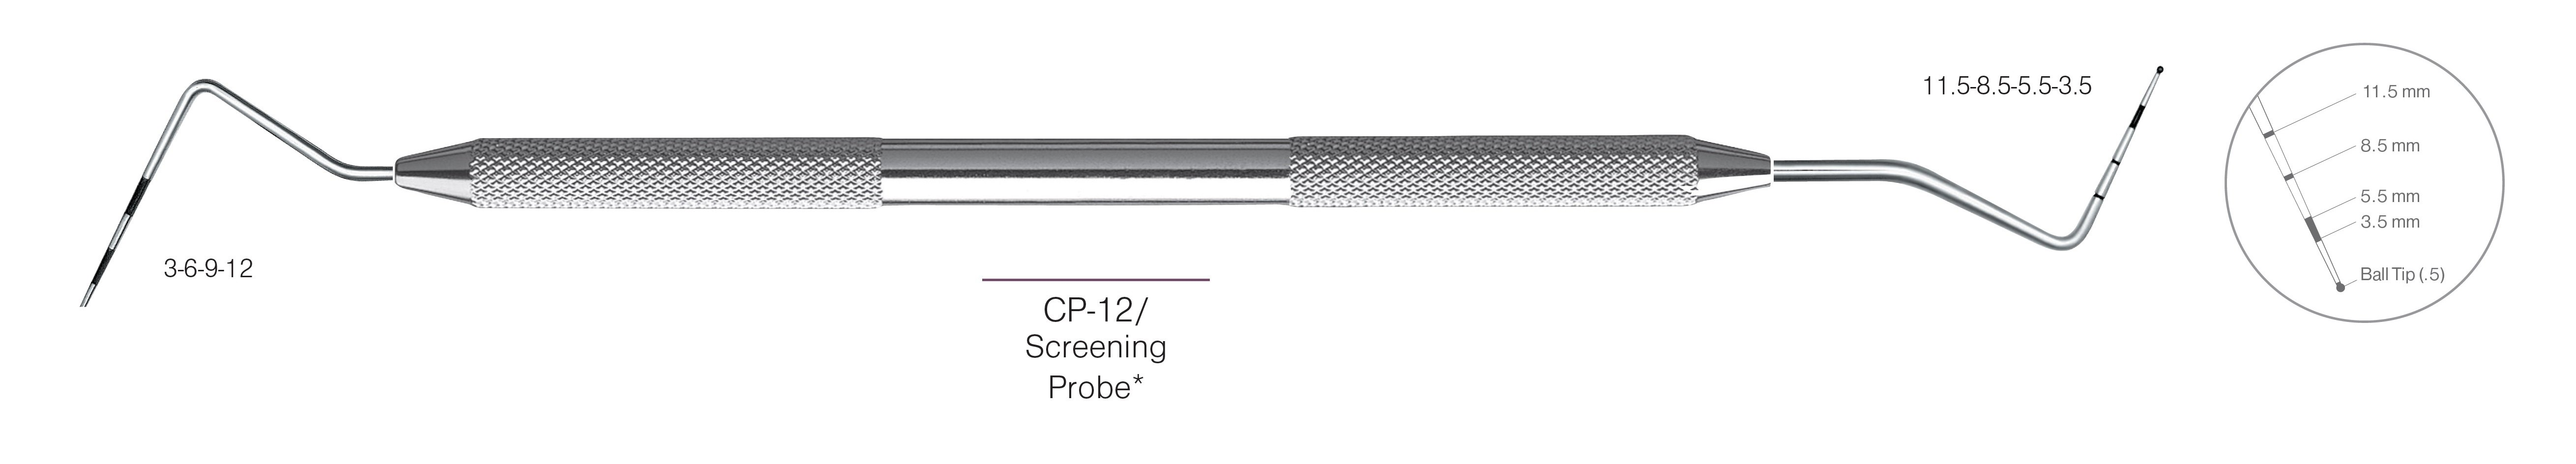 HF-PCP12-11.5-31, DOUBLE-ENDED SCREENING PROBES CP-12 Screening Probe*, Black markings, Tip 3-6-9-12 mm & 11.5-8.5-5.5-3.5 mm, With Ball tip (0.5), Handle Round, Double Ended